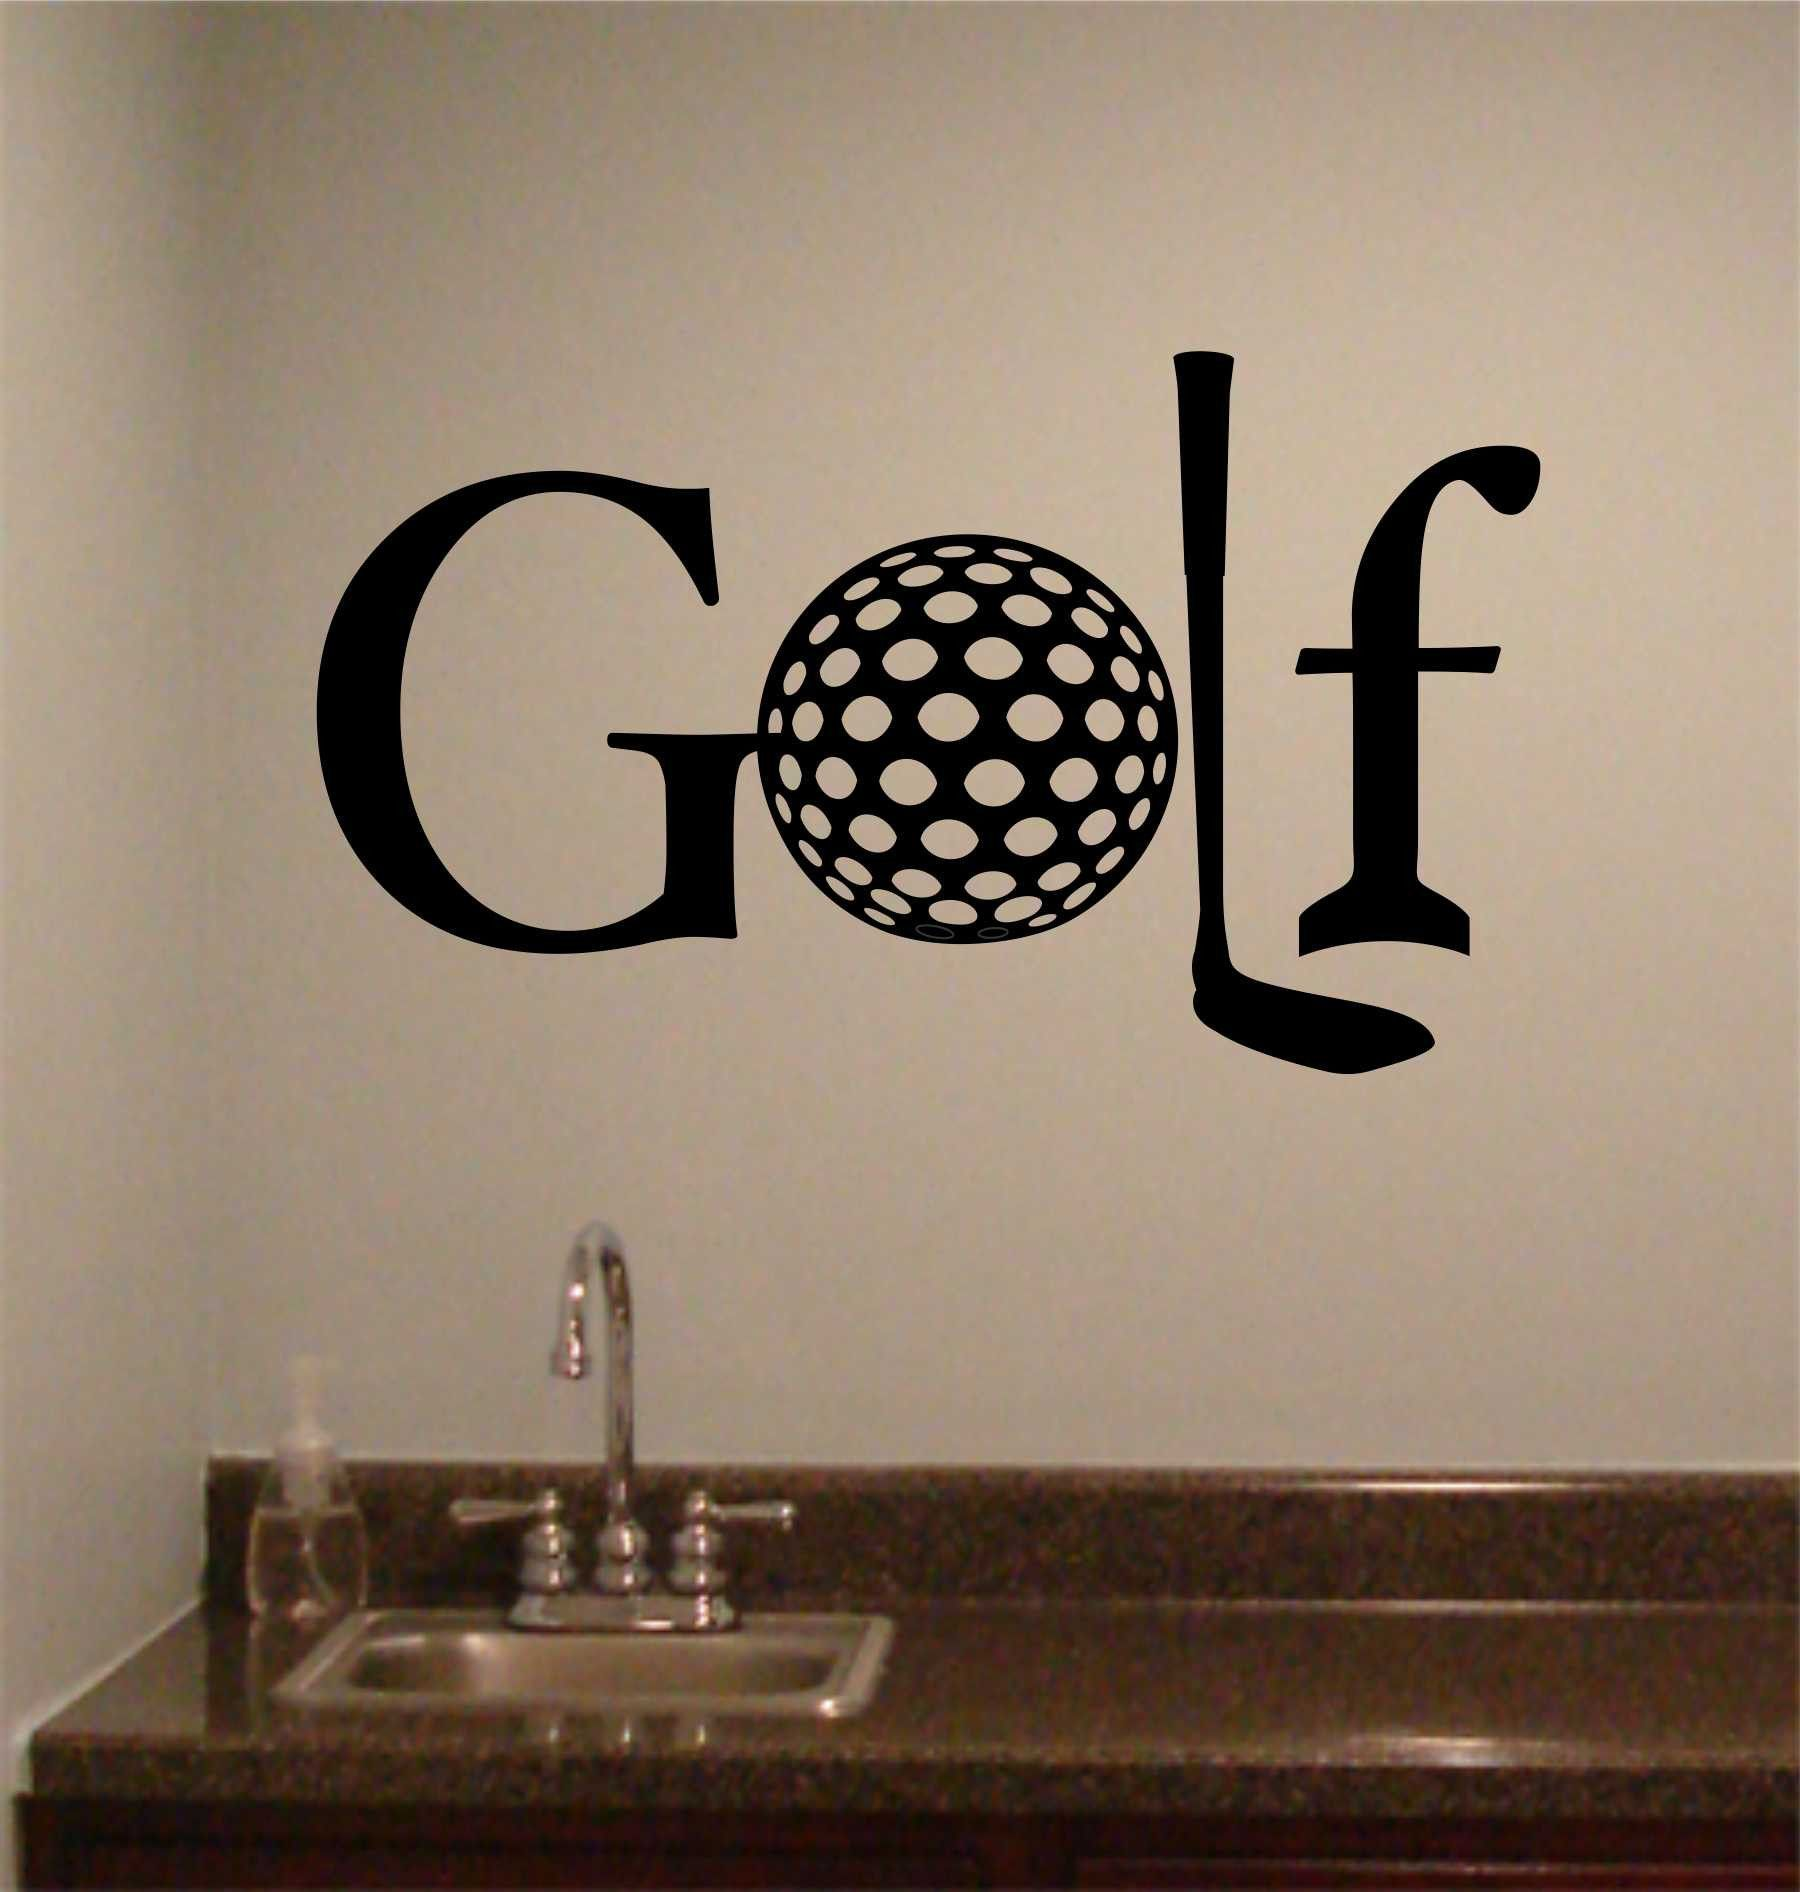 Golf theme decal golf word vinyl wall lettering sports decal golf theme decal golf word vinyl wall lettering sports decal amipublicfo Gallery